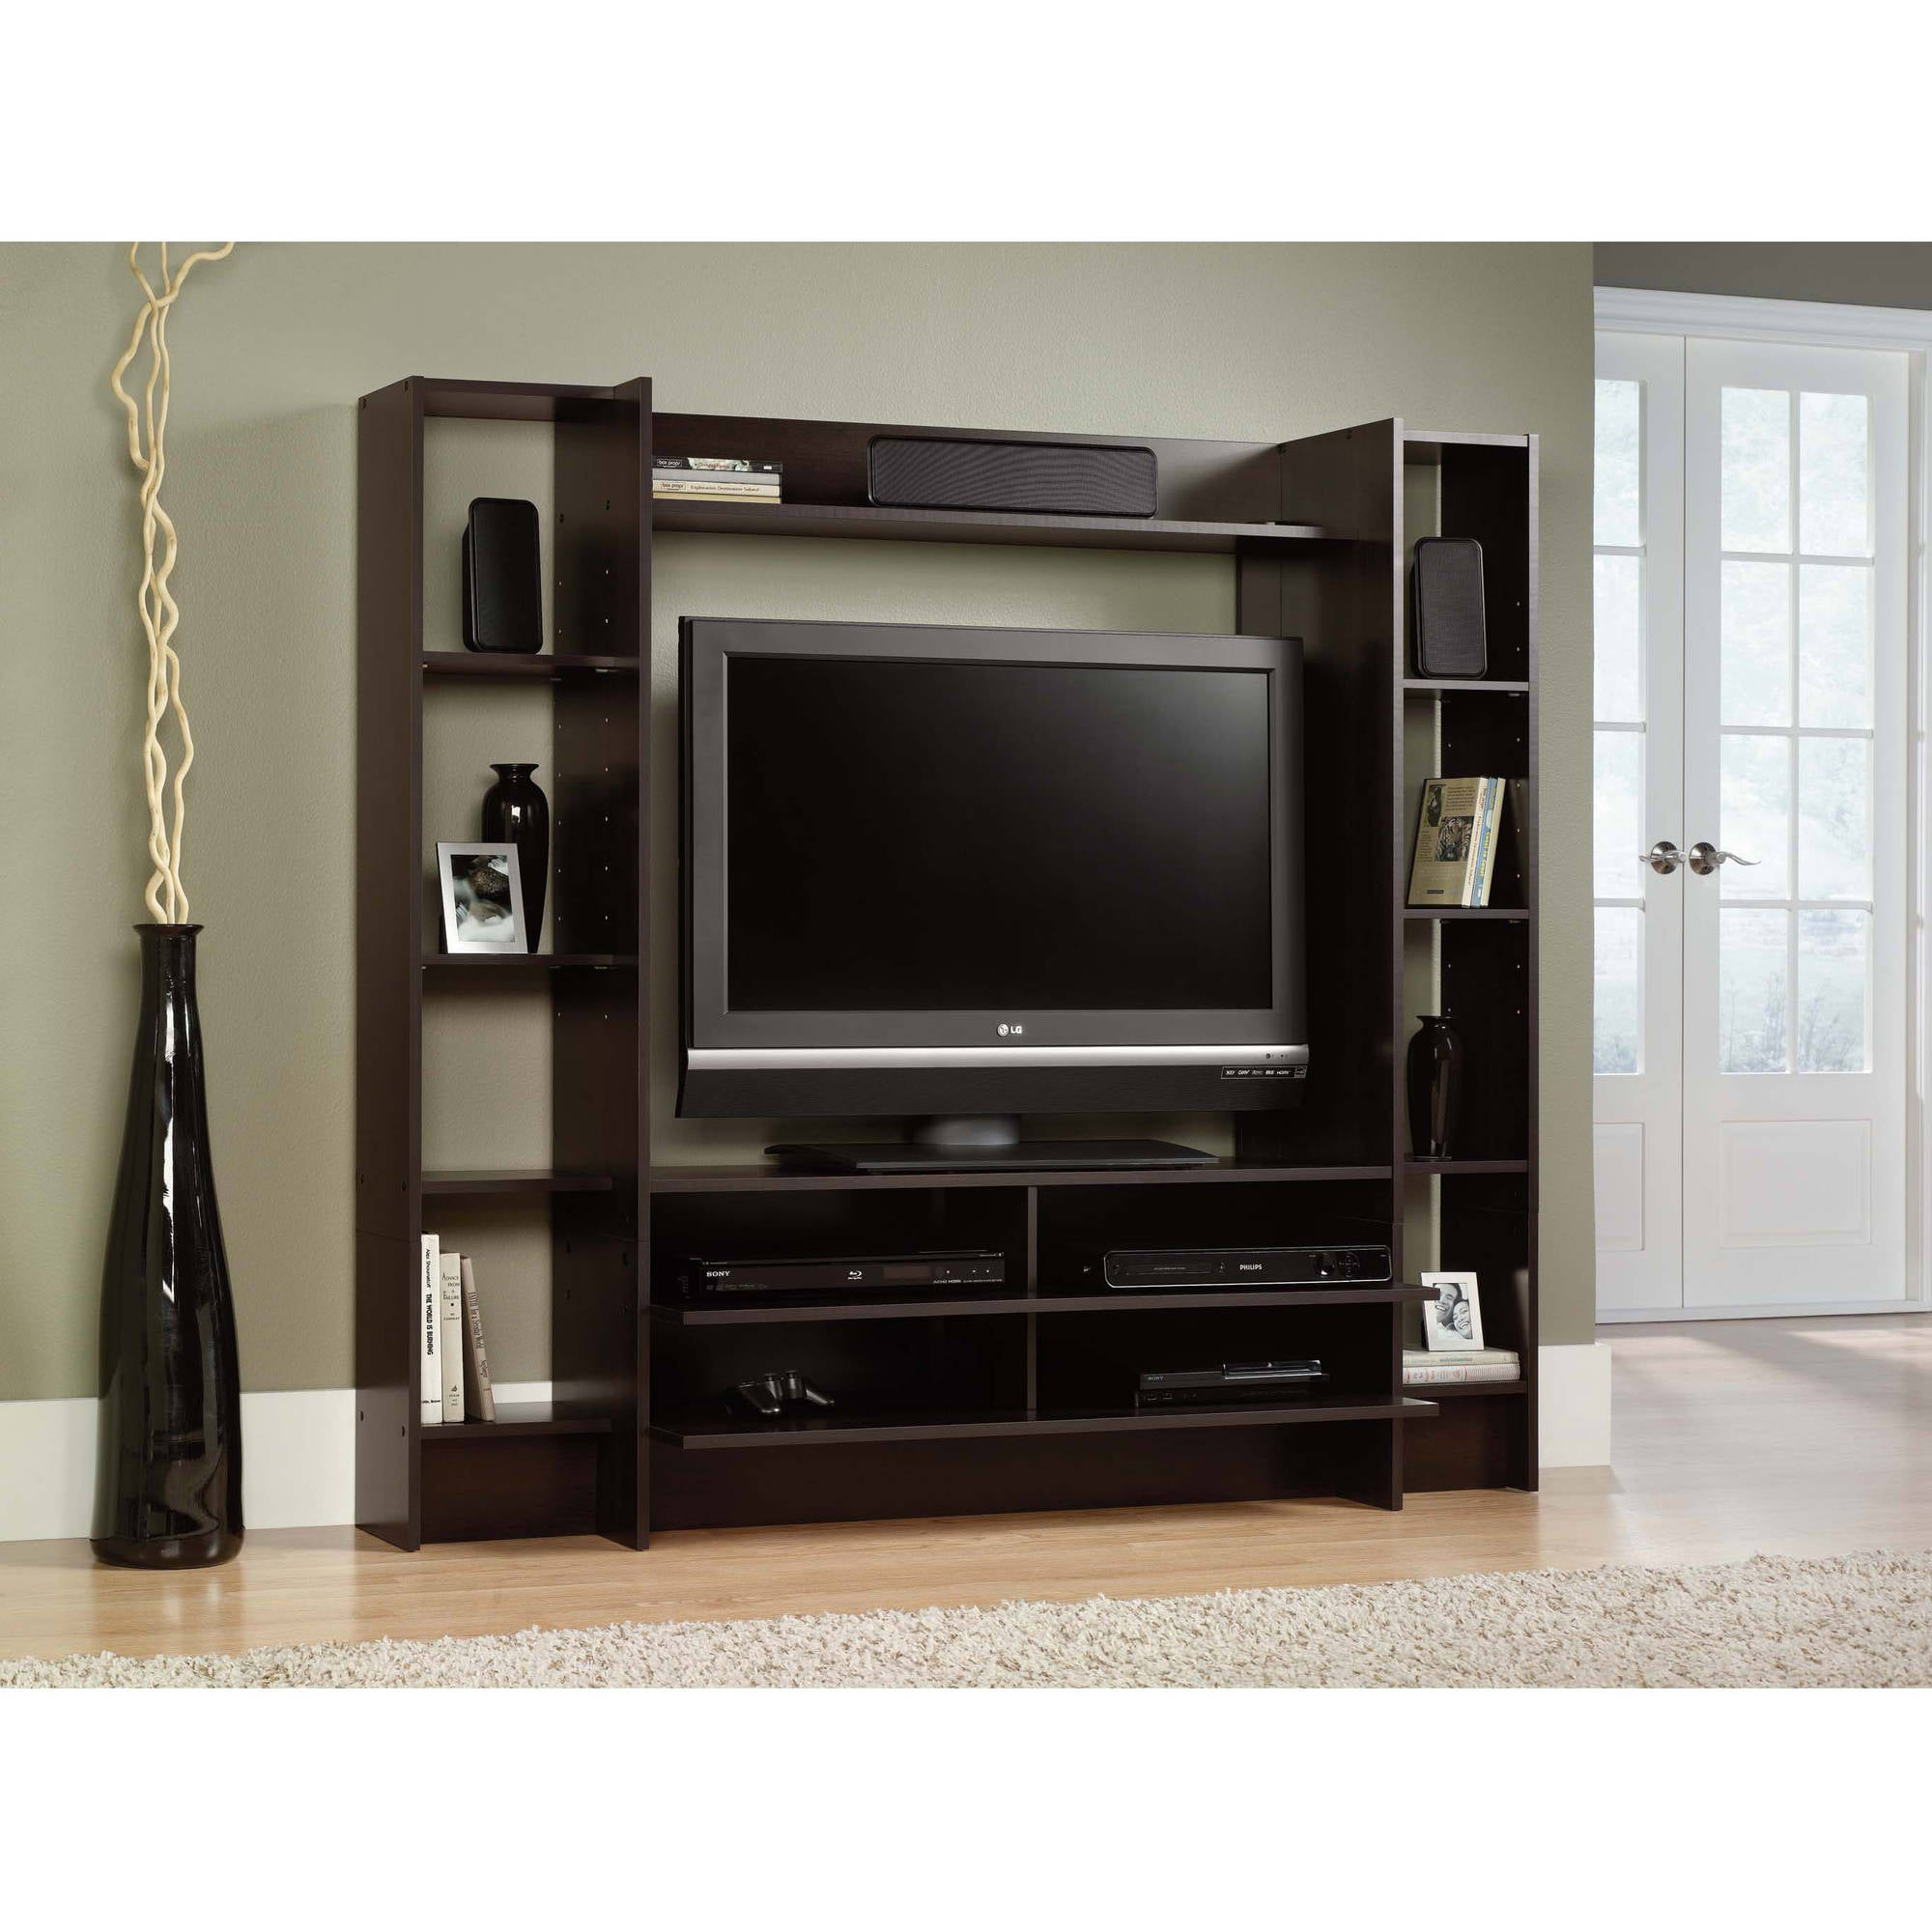 Modern Furniture Entertainment Center tv stands & entertainment centers - walmart